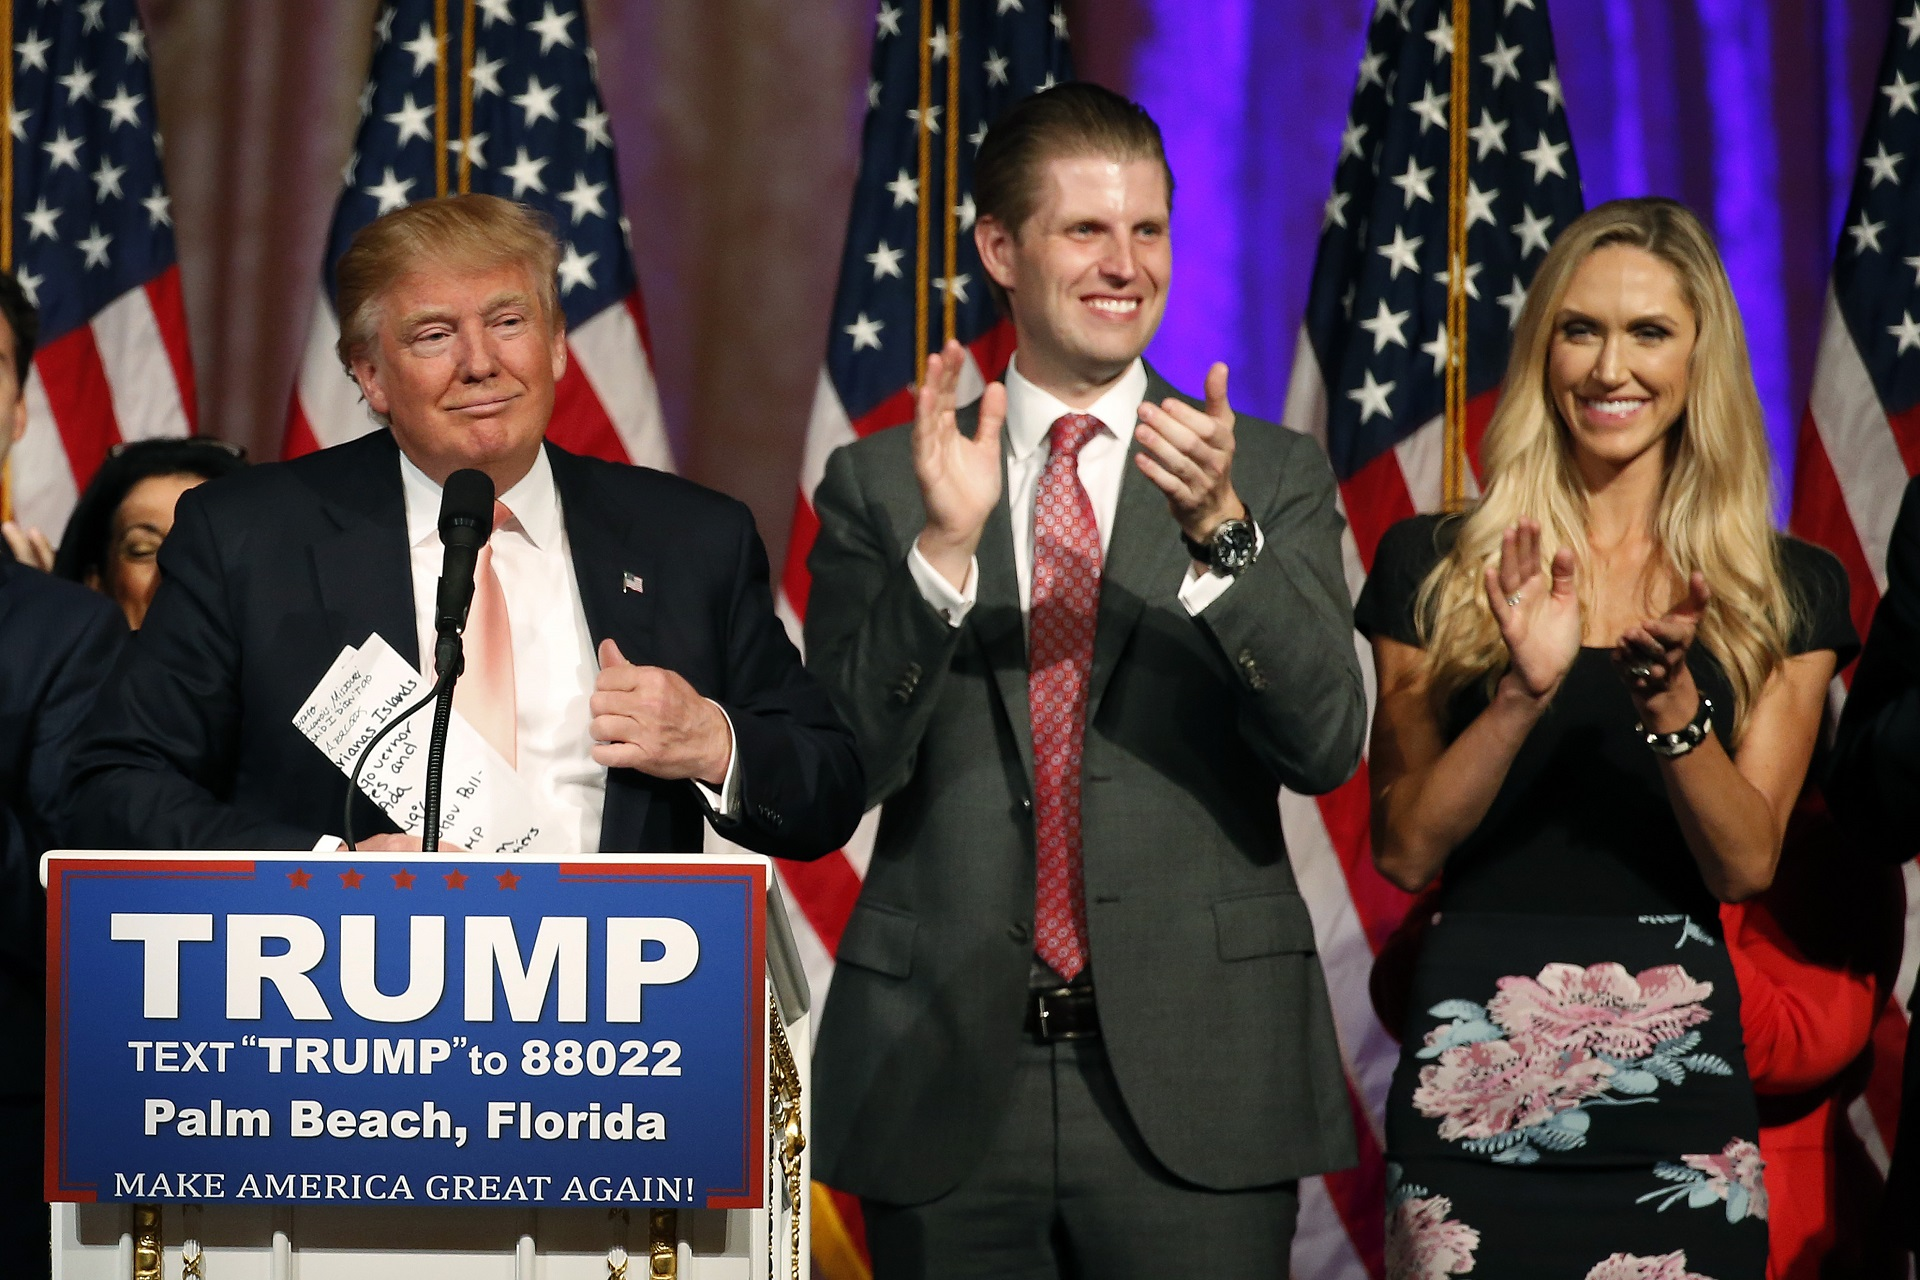 Lara Trump, daughter-in-law of Donald Trump: her most controversial statements